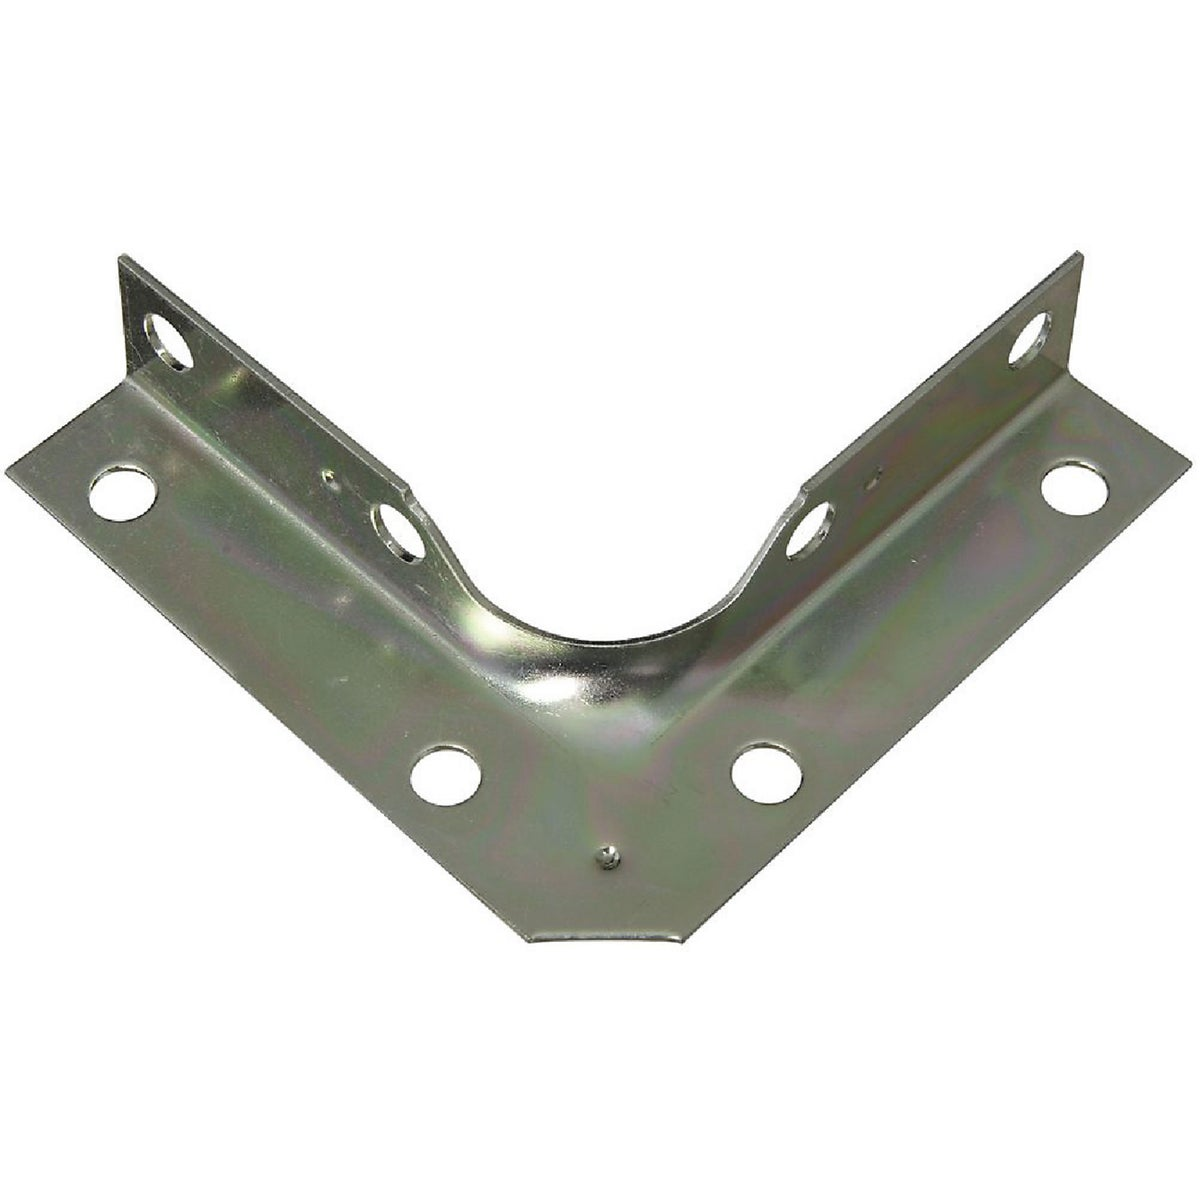 3X5/8 CORNER BRACE - N245407 by National Mfg Co